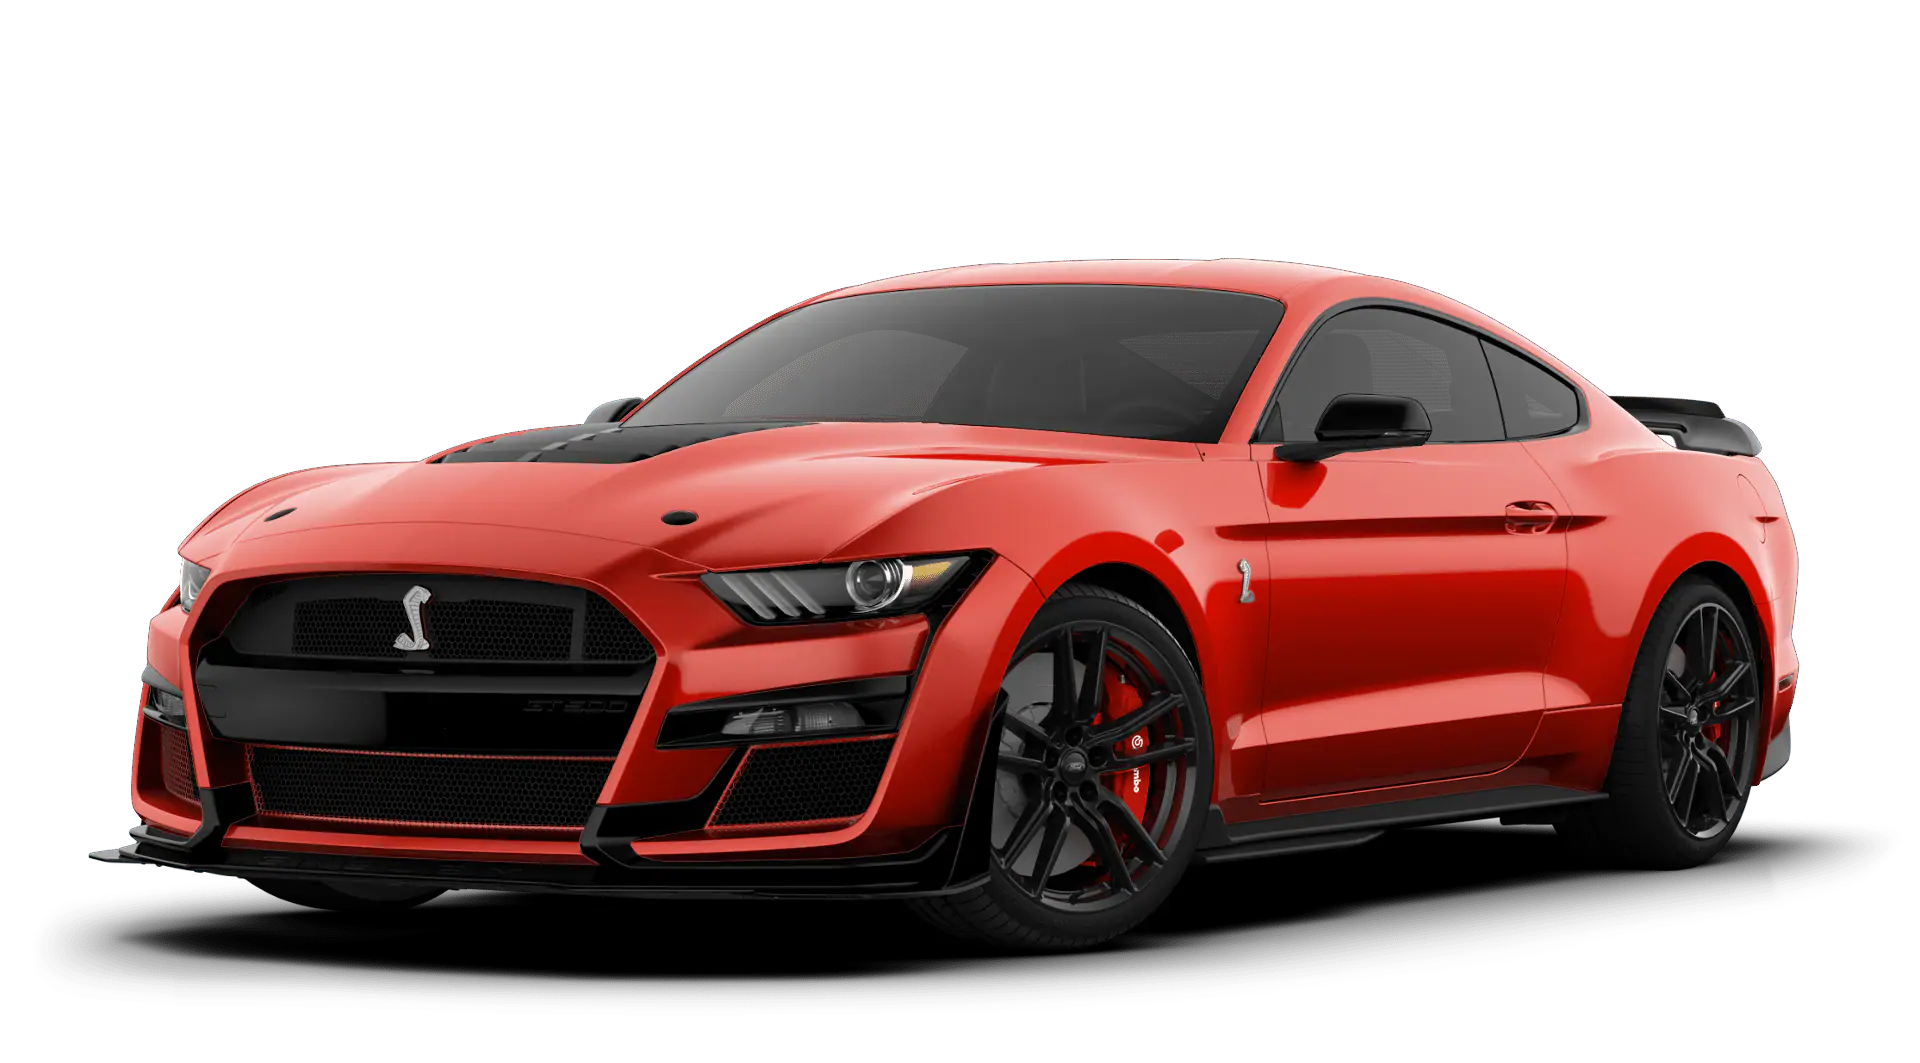 2020 Ford Mustang Shelby GT500 Race Red